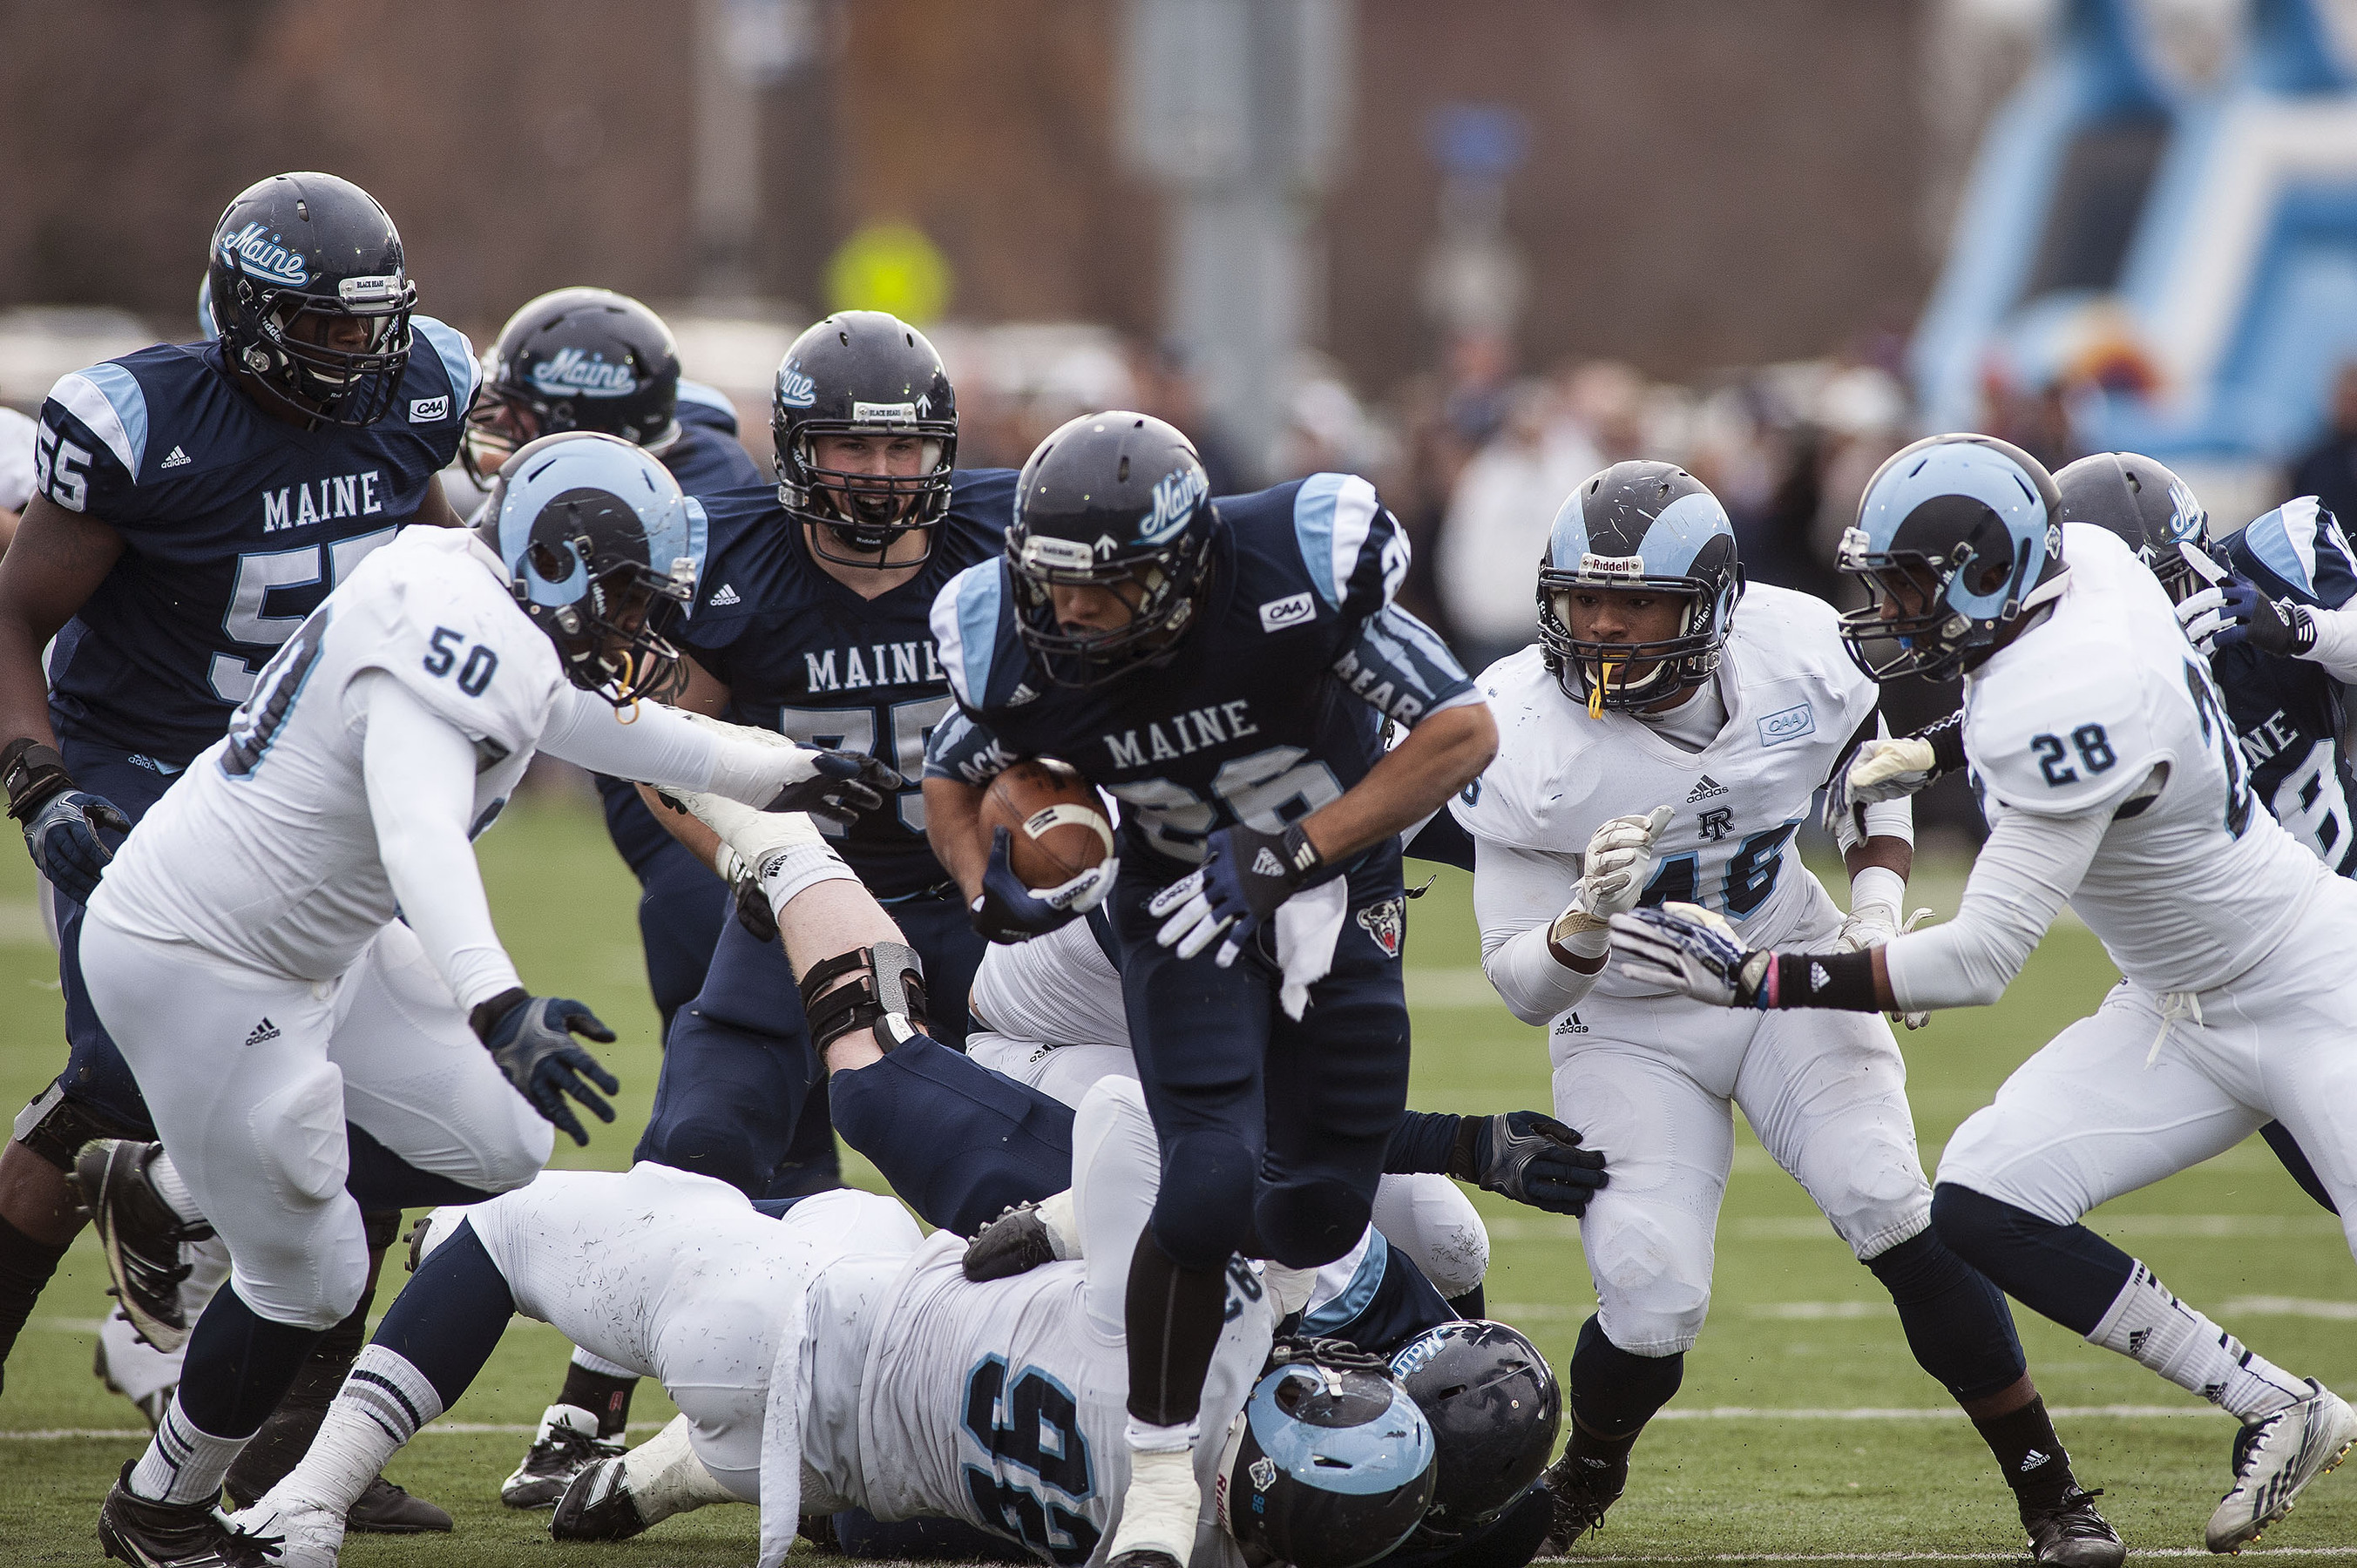 UMaine football ranked 4th nationally in its division ...